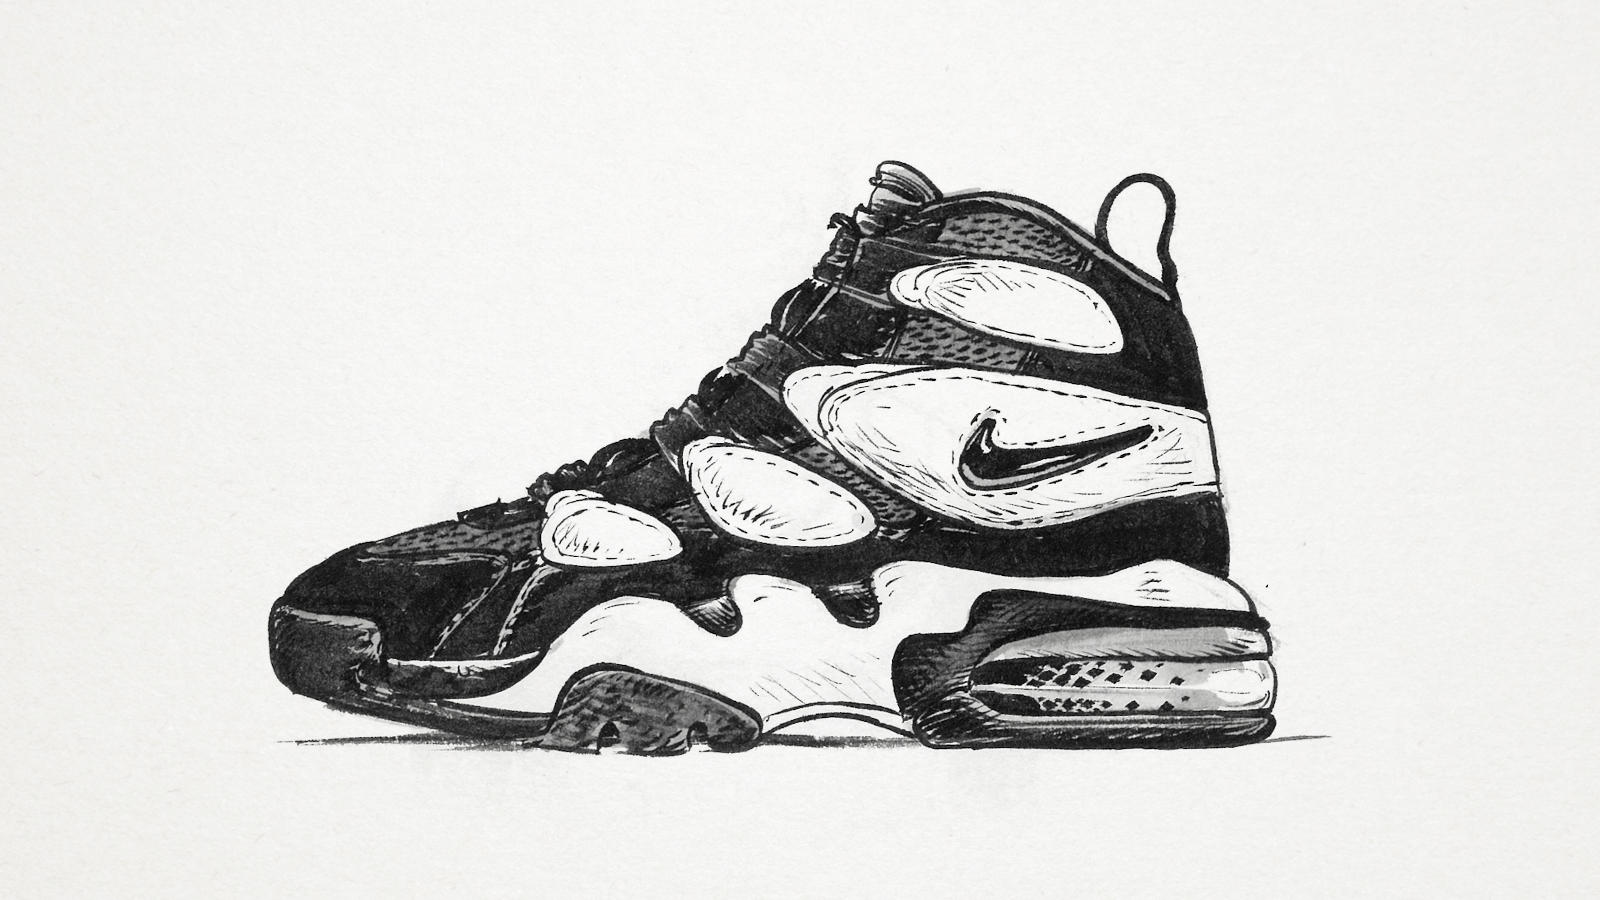 c66ebced3981 The Enduring Influence of  90s Hoops - Nike News